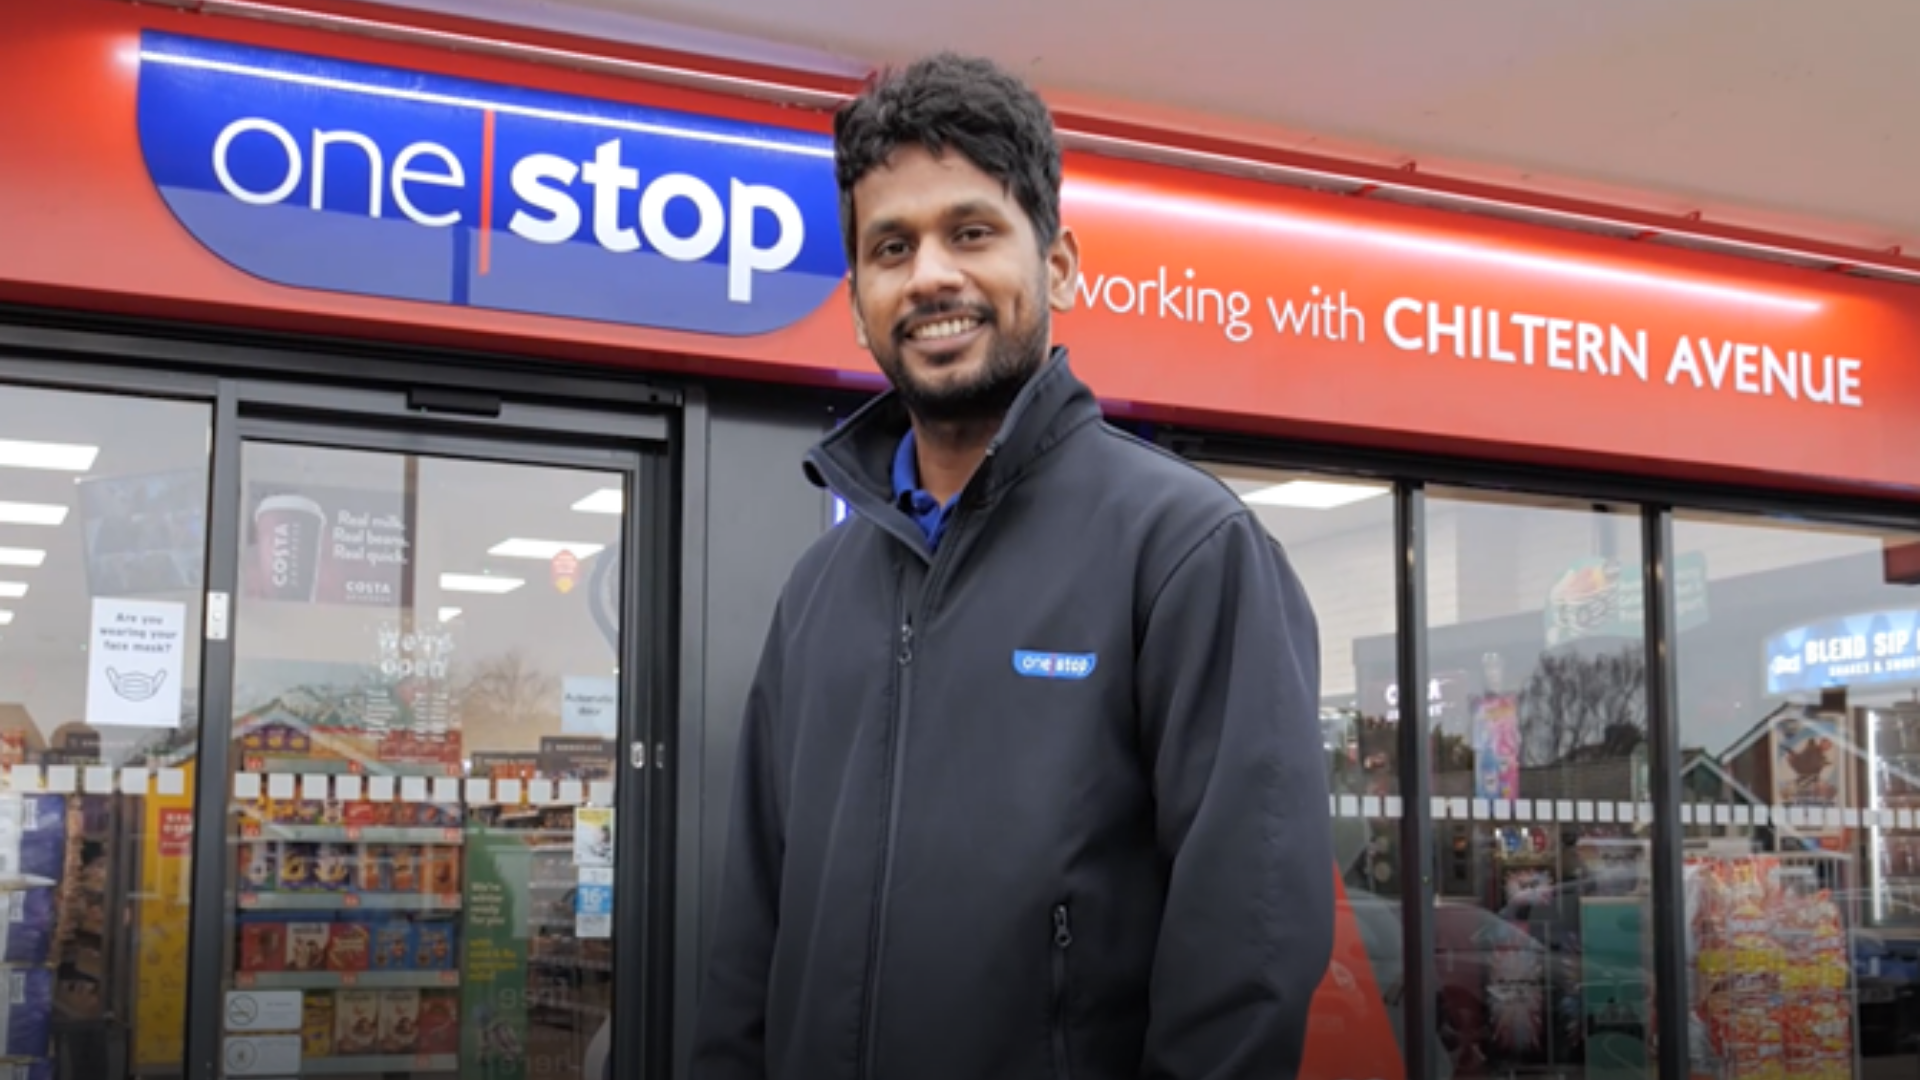 Growth of 'Food to Go' and vending leading to strong franchise sales